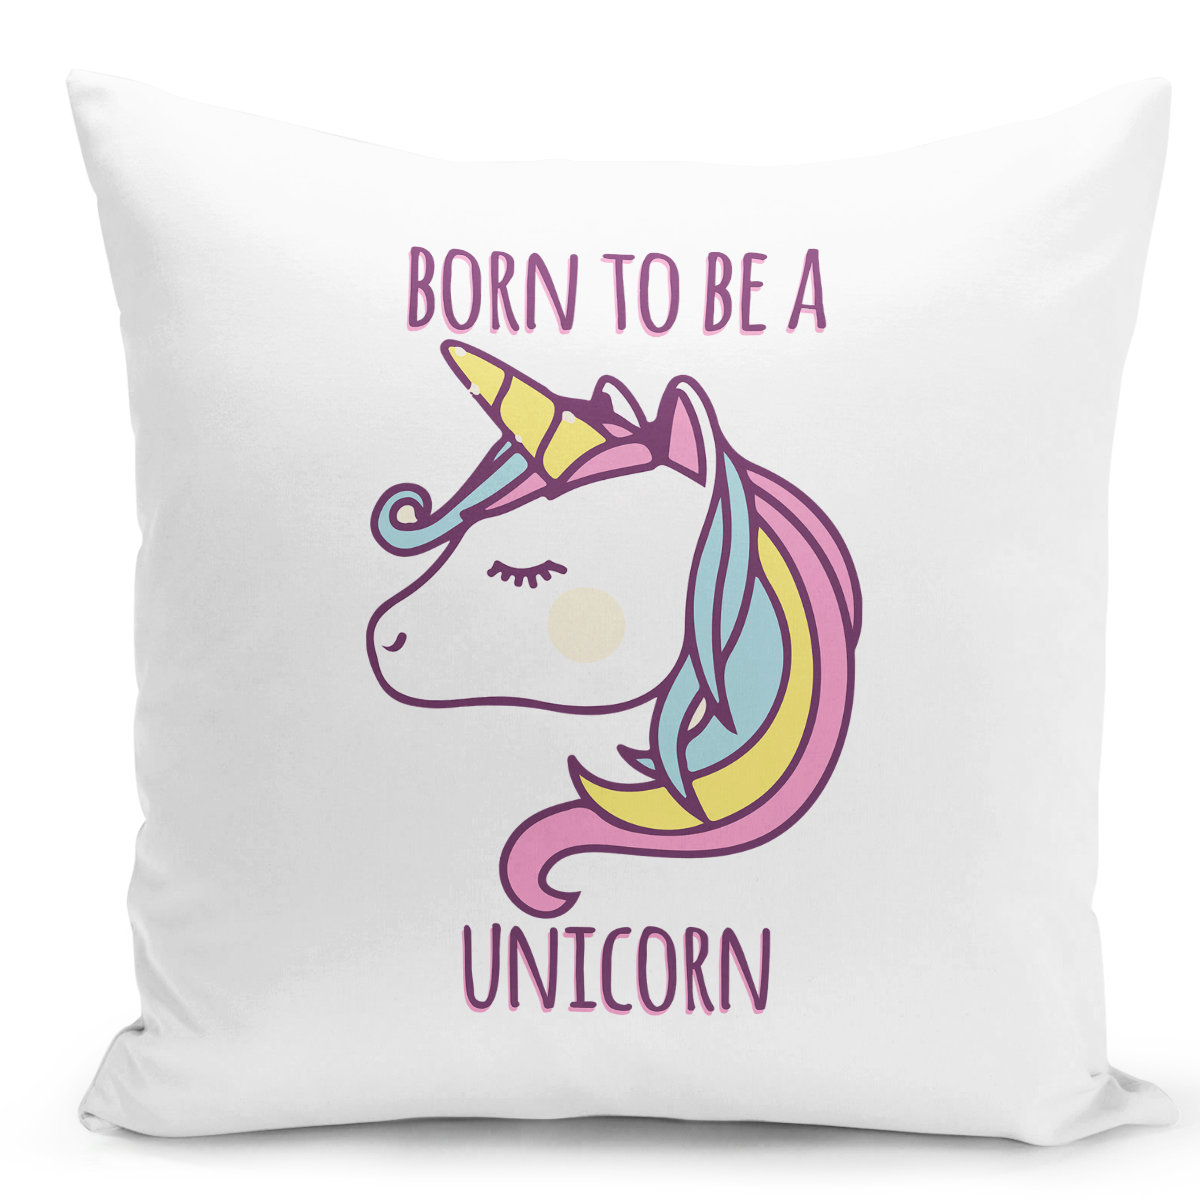 16x16-inch-Throw-Pillow-for-Home-Decor-with-Stuffing-Born-To-Be-a-Unicorn-Colorful-Pillow-